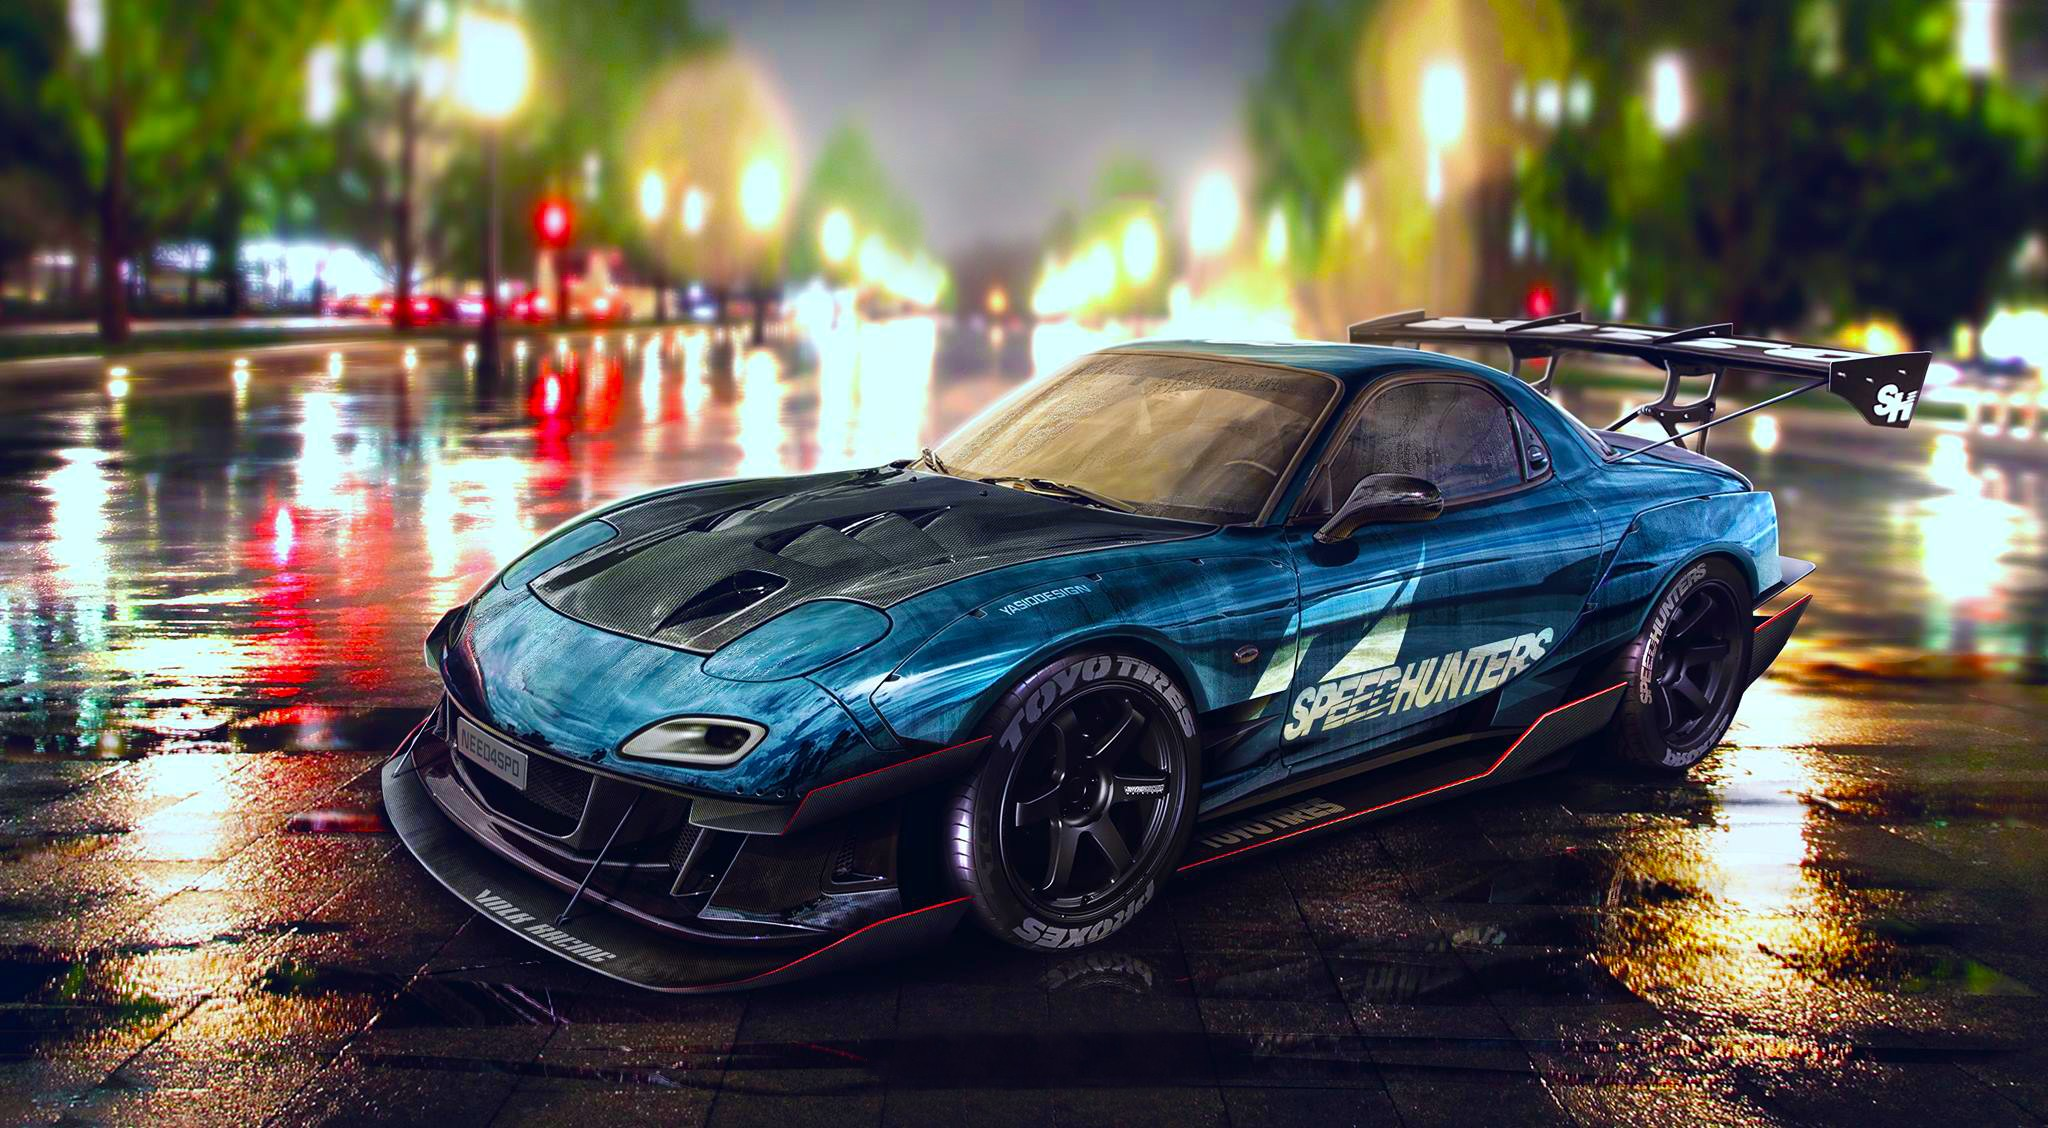 Car Mazda RX 7 Tuning Need For Speed Wallpapers HD